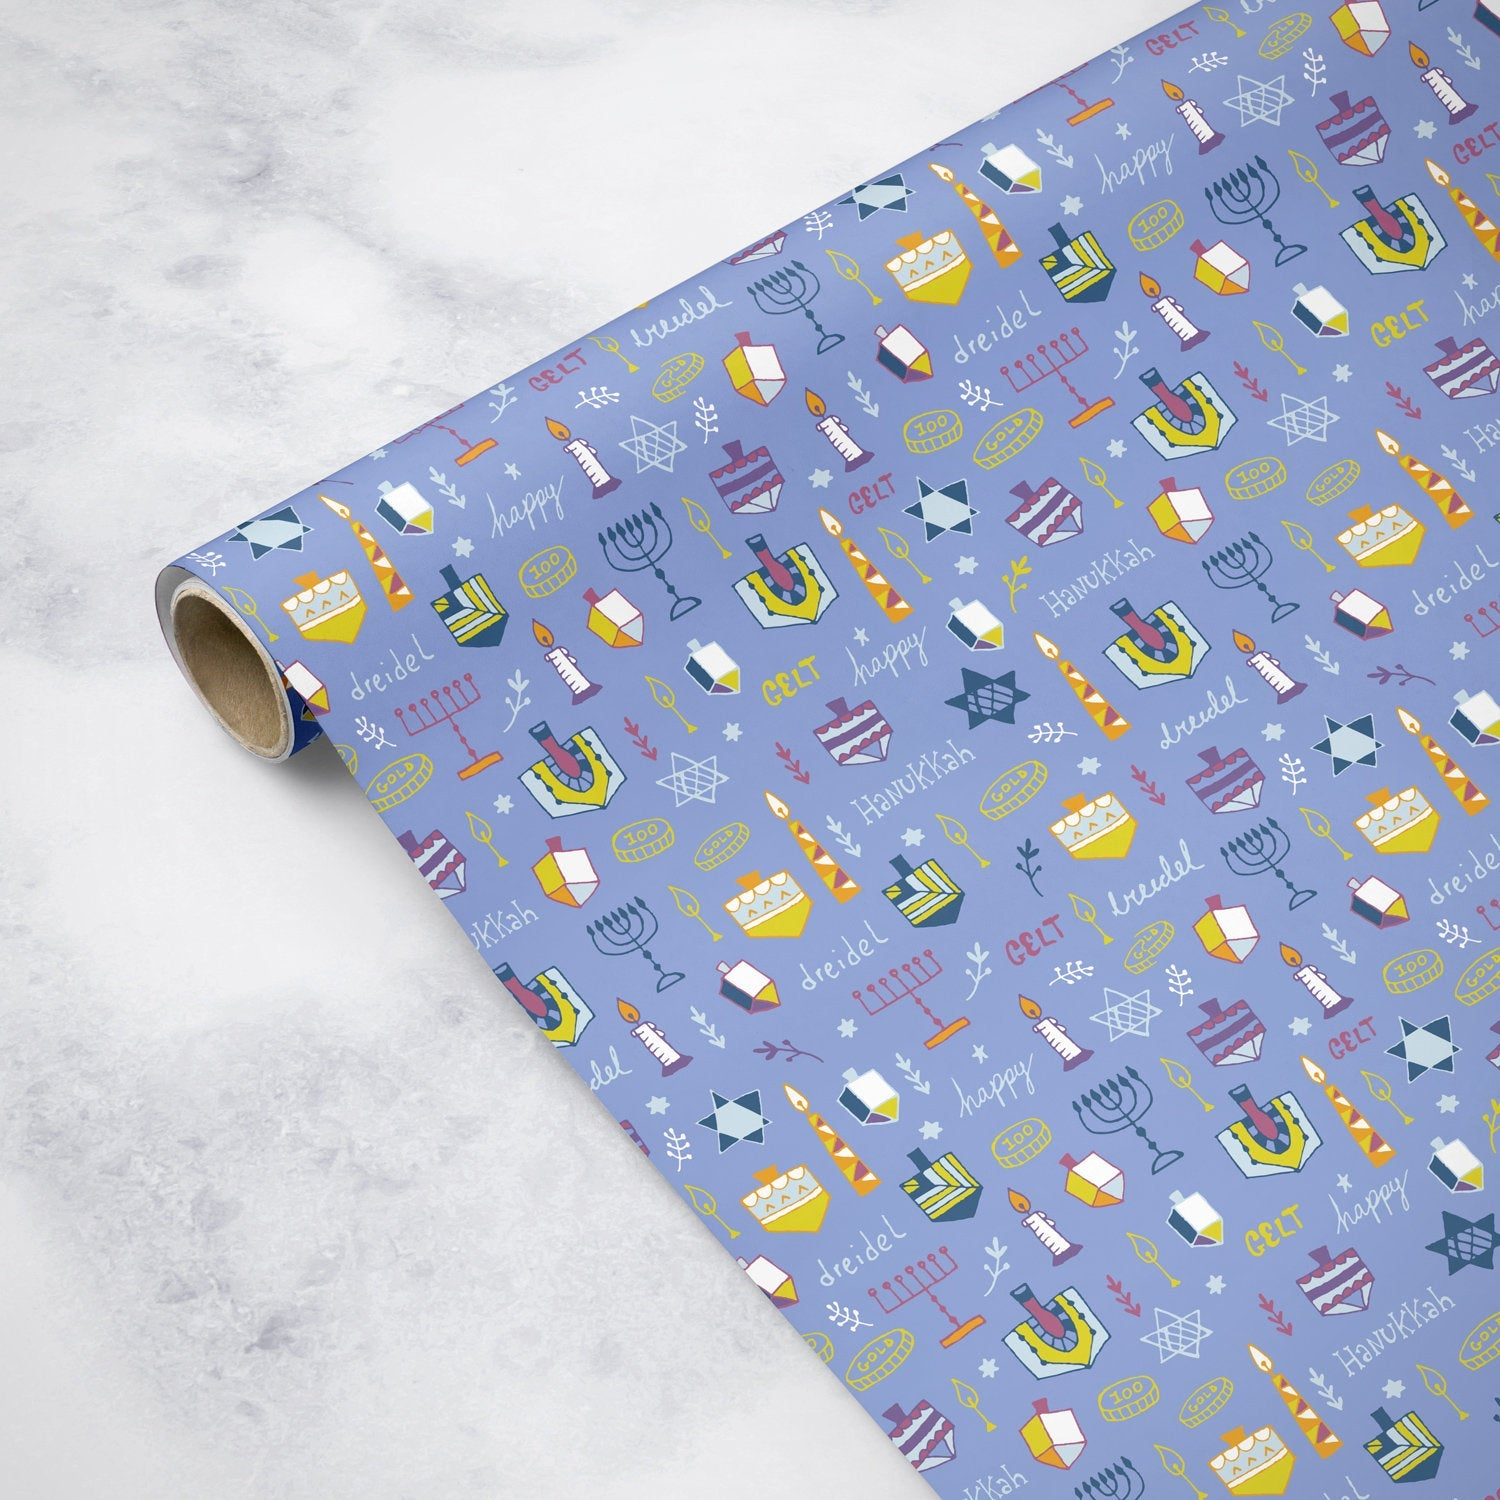 Hanukkah - Wrapping Paper